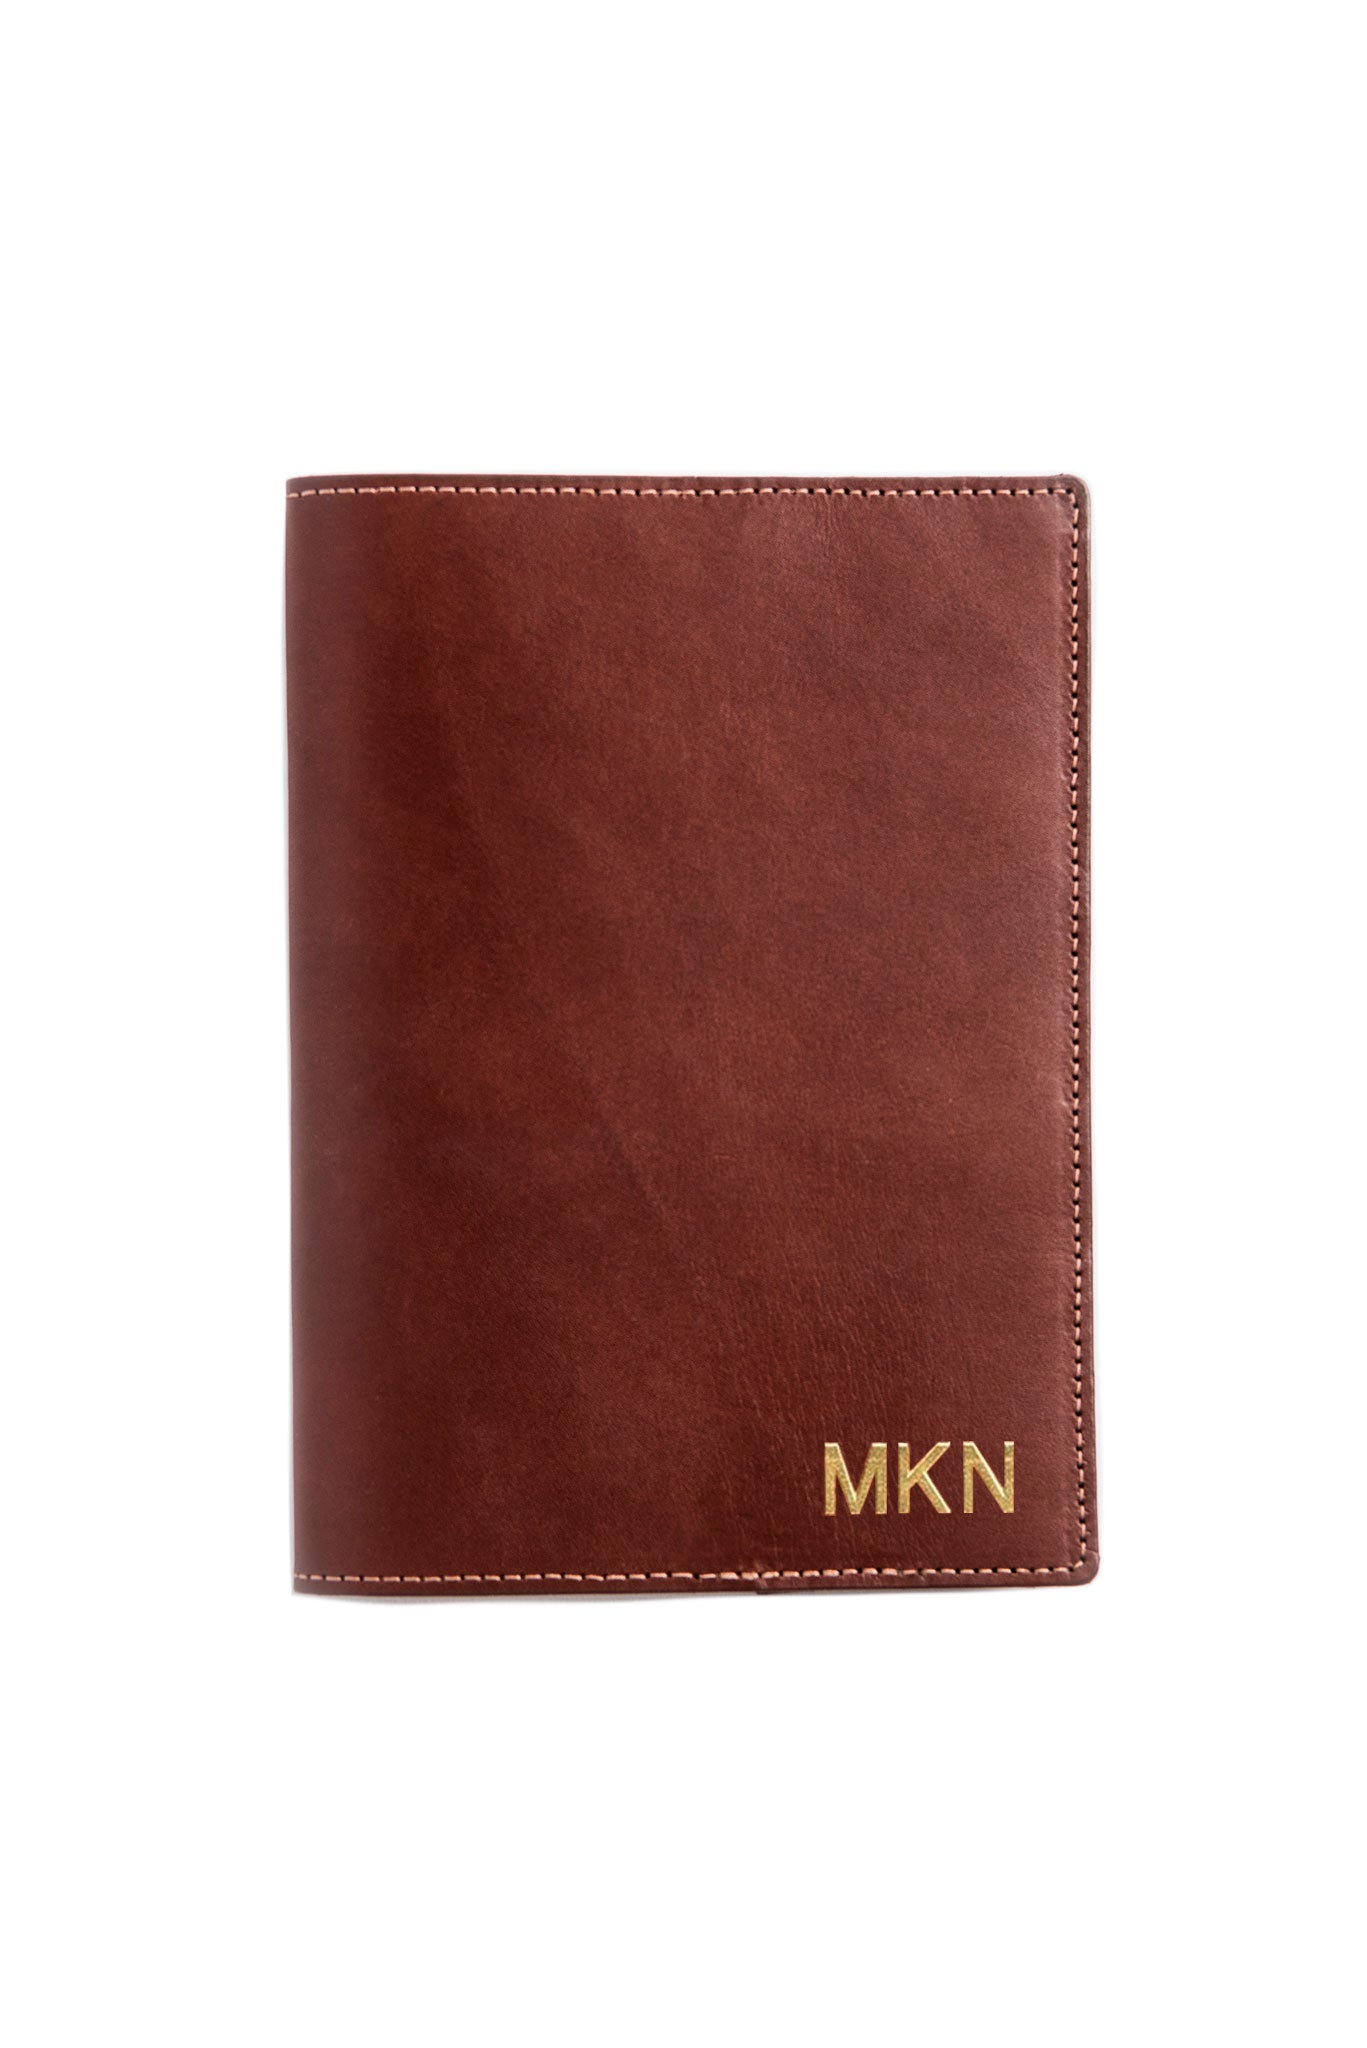 FOTO | Dutch Leather Journal Cover - refillable medium brown genuine leather journal cover can be personalized with gold foil initials, a monogram or business logo making it the perfect personalized gift.